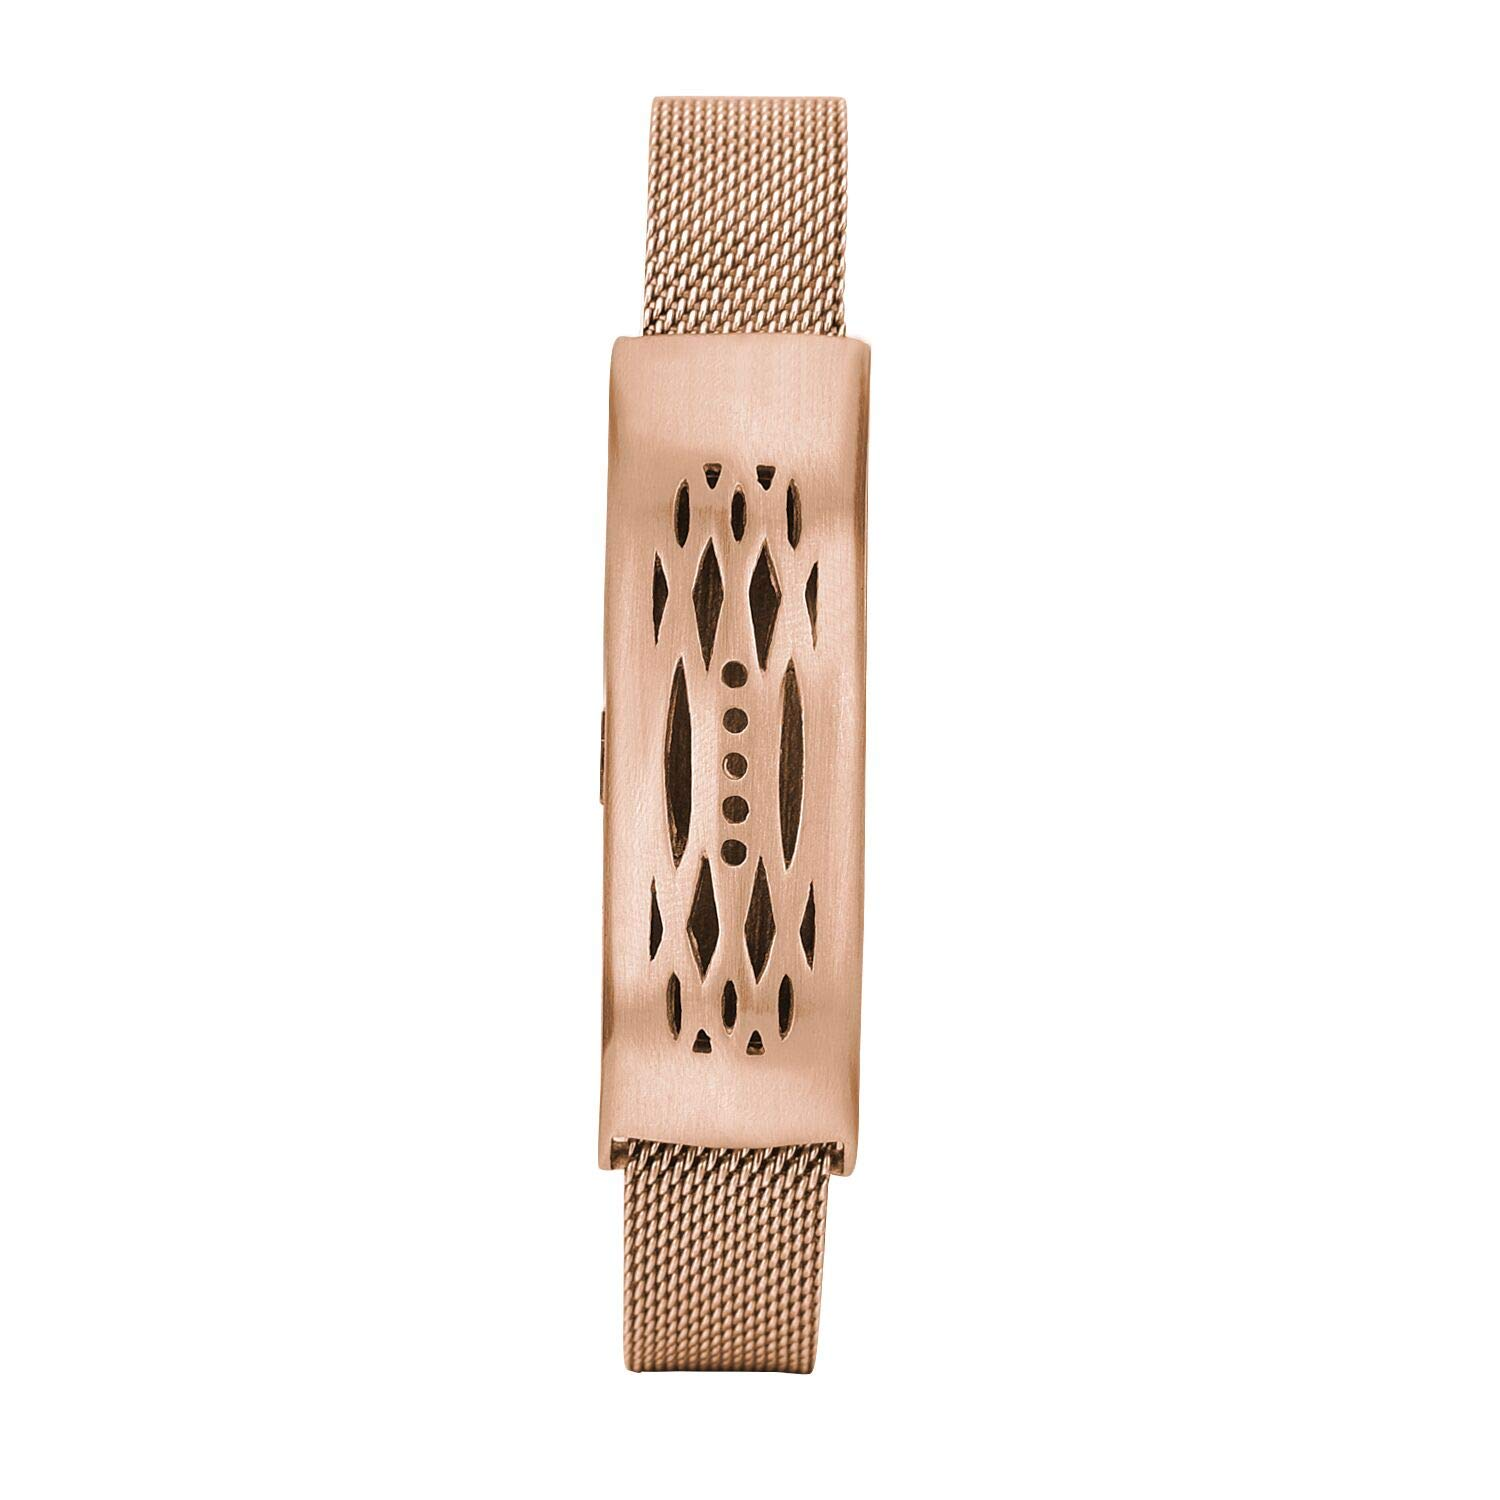 CAGOS Compatible with Fitbit Flex 2 Bands, Stainless Steel Mesh Loop Wrist Metal Mesh Replacement Accessory Replacement for Fitbit Flex 2(Rose Gold) by CAGOS